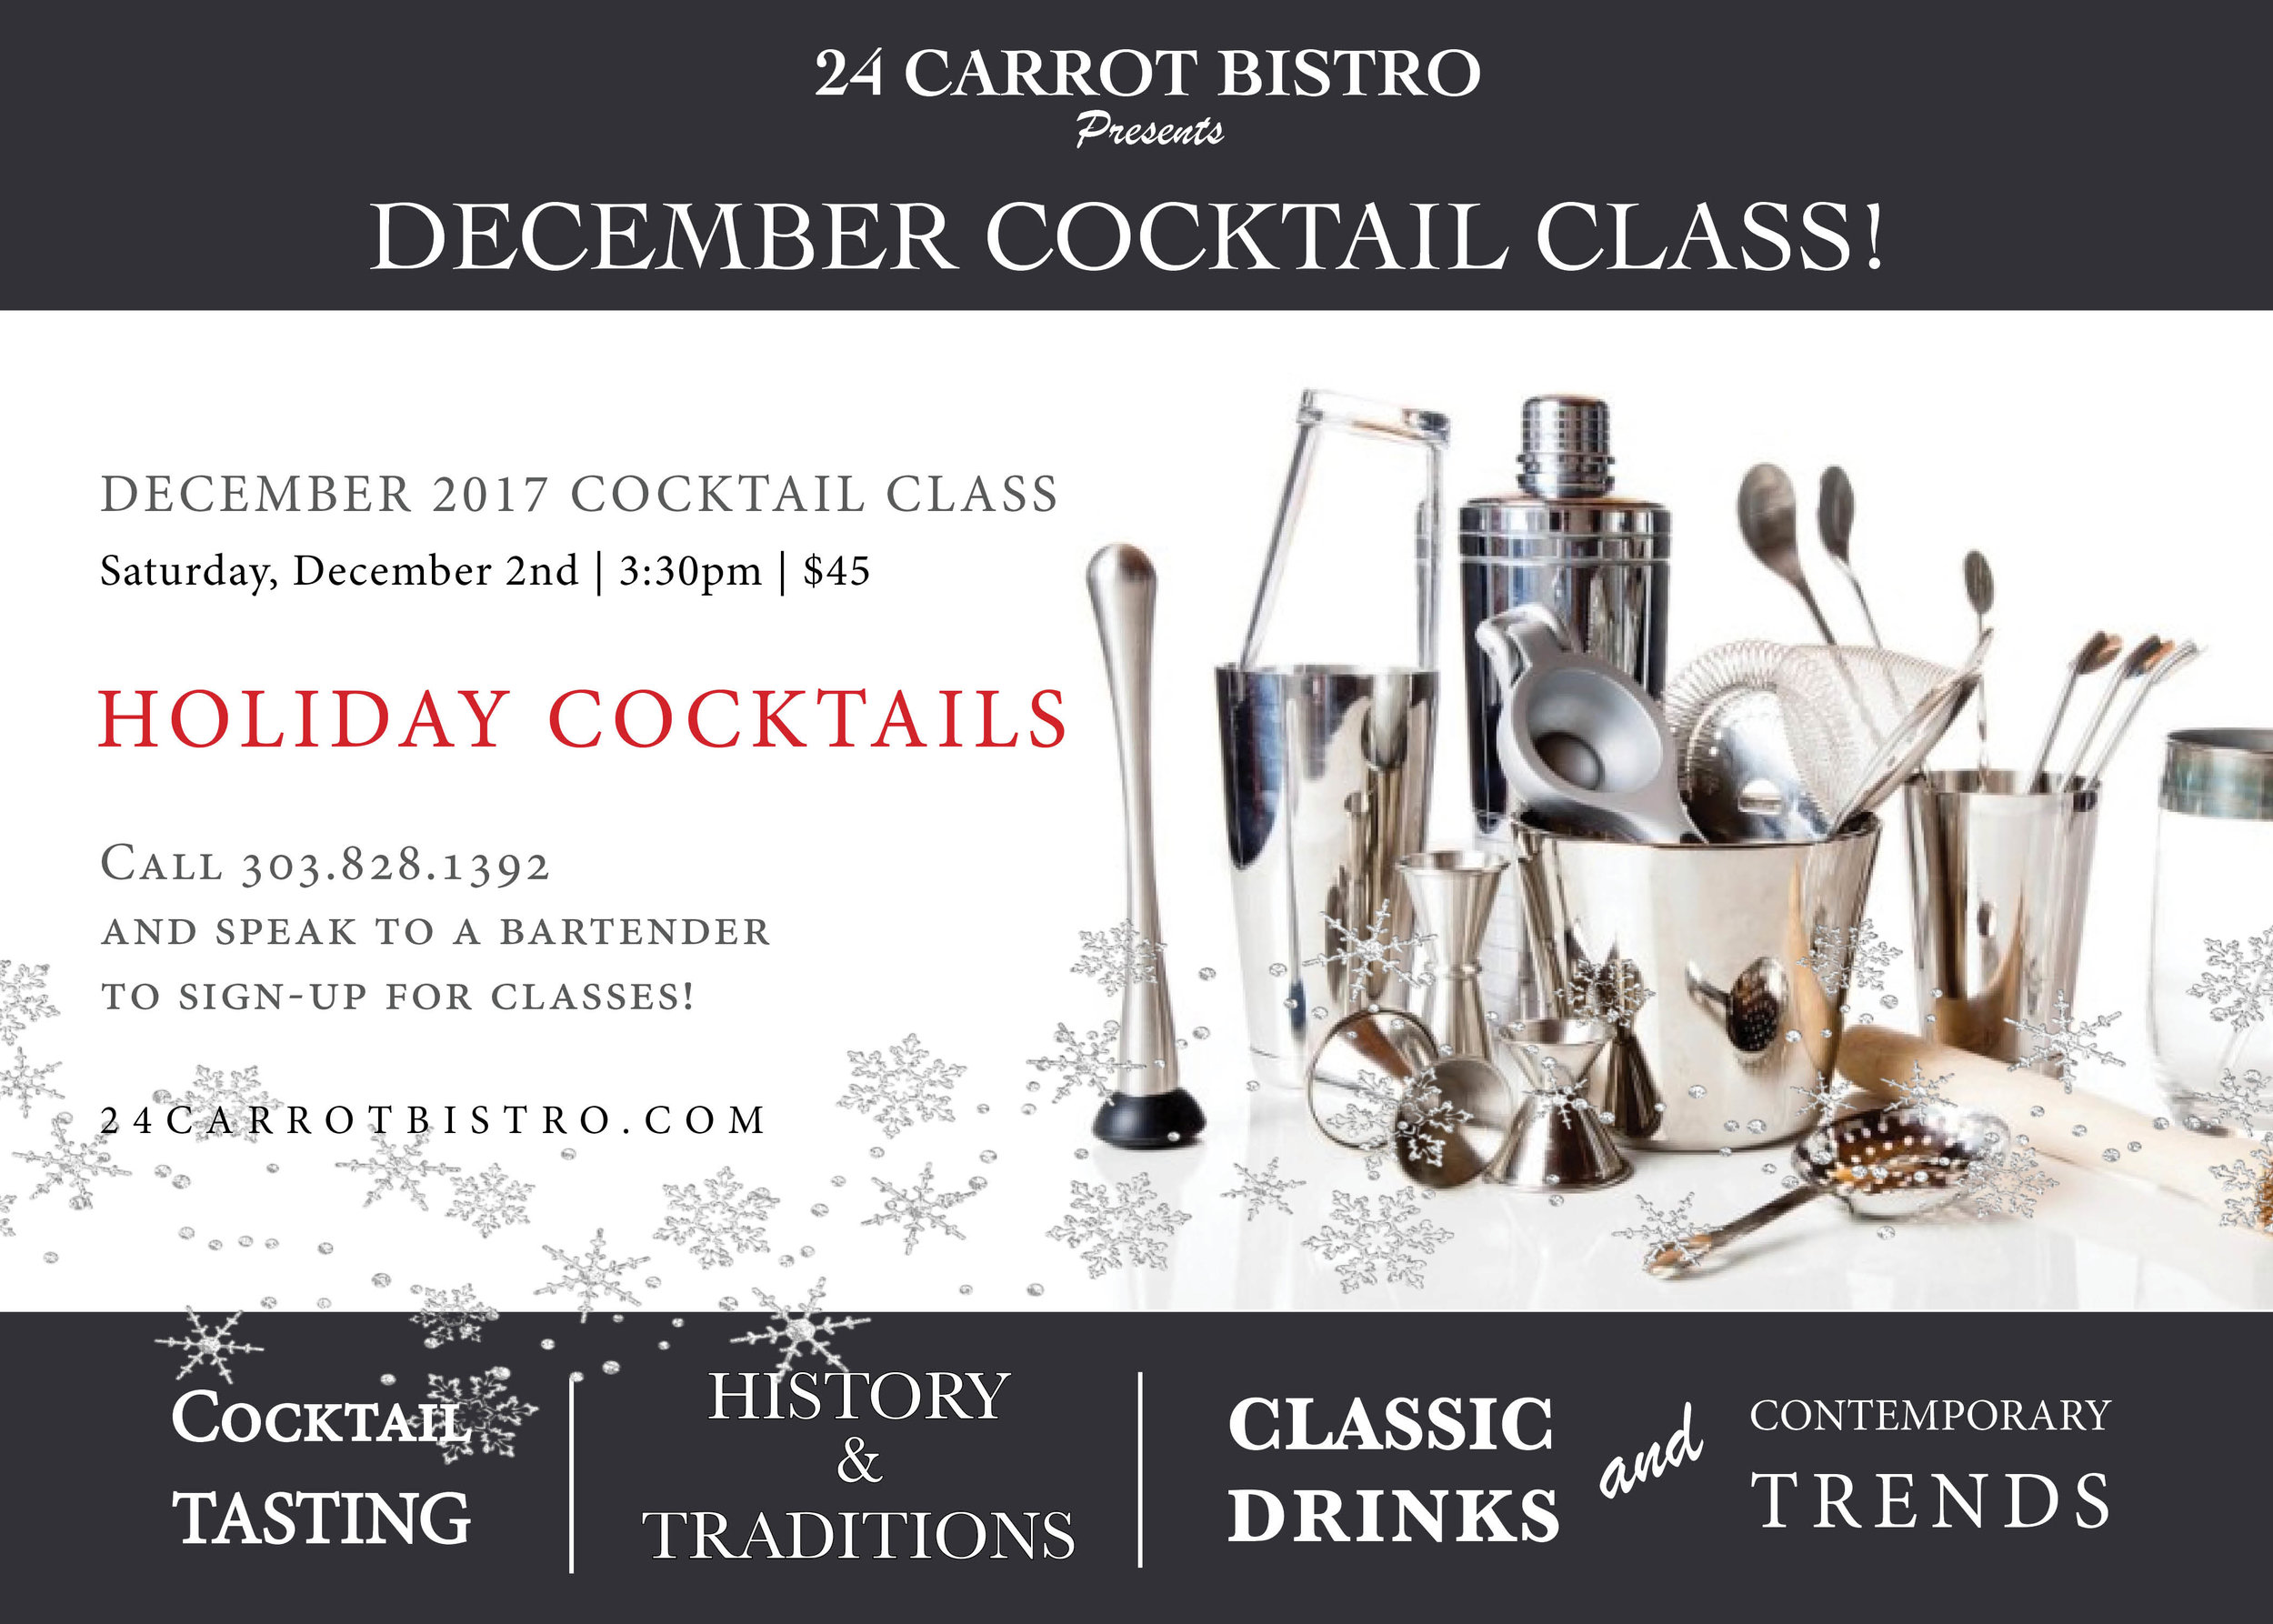 December Cocktail Classes Flyer.jpg